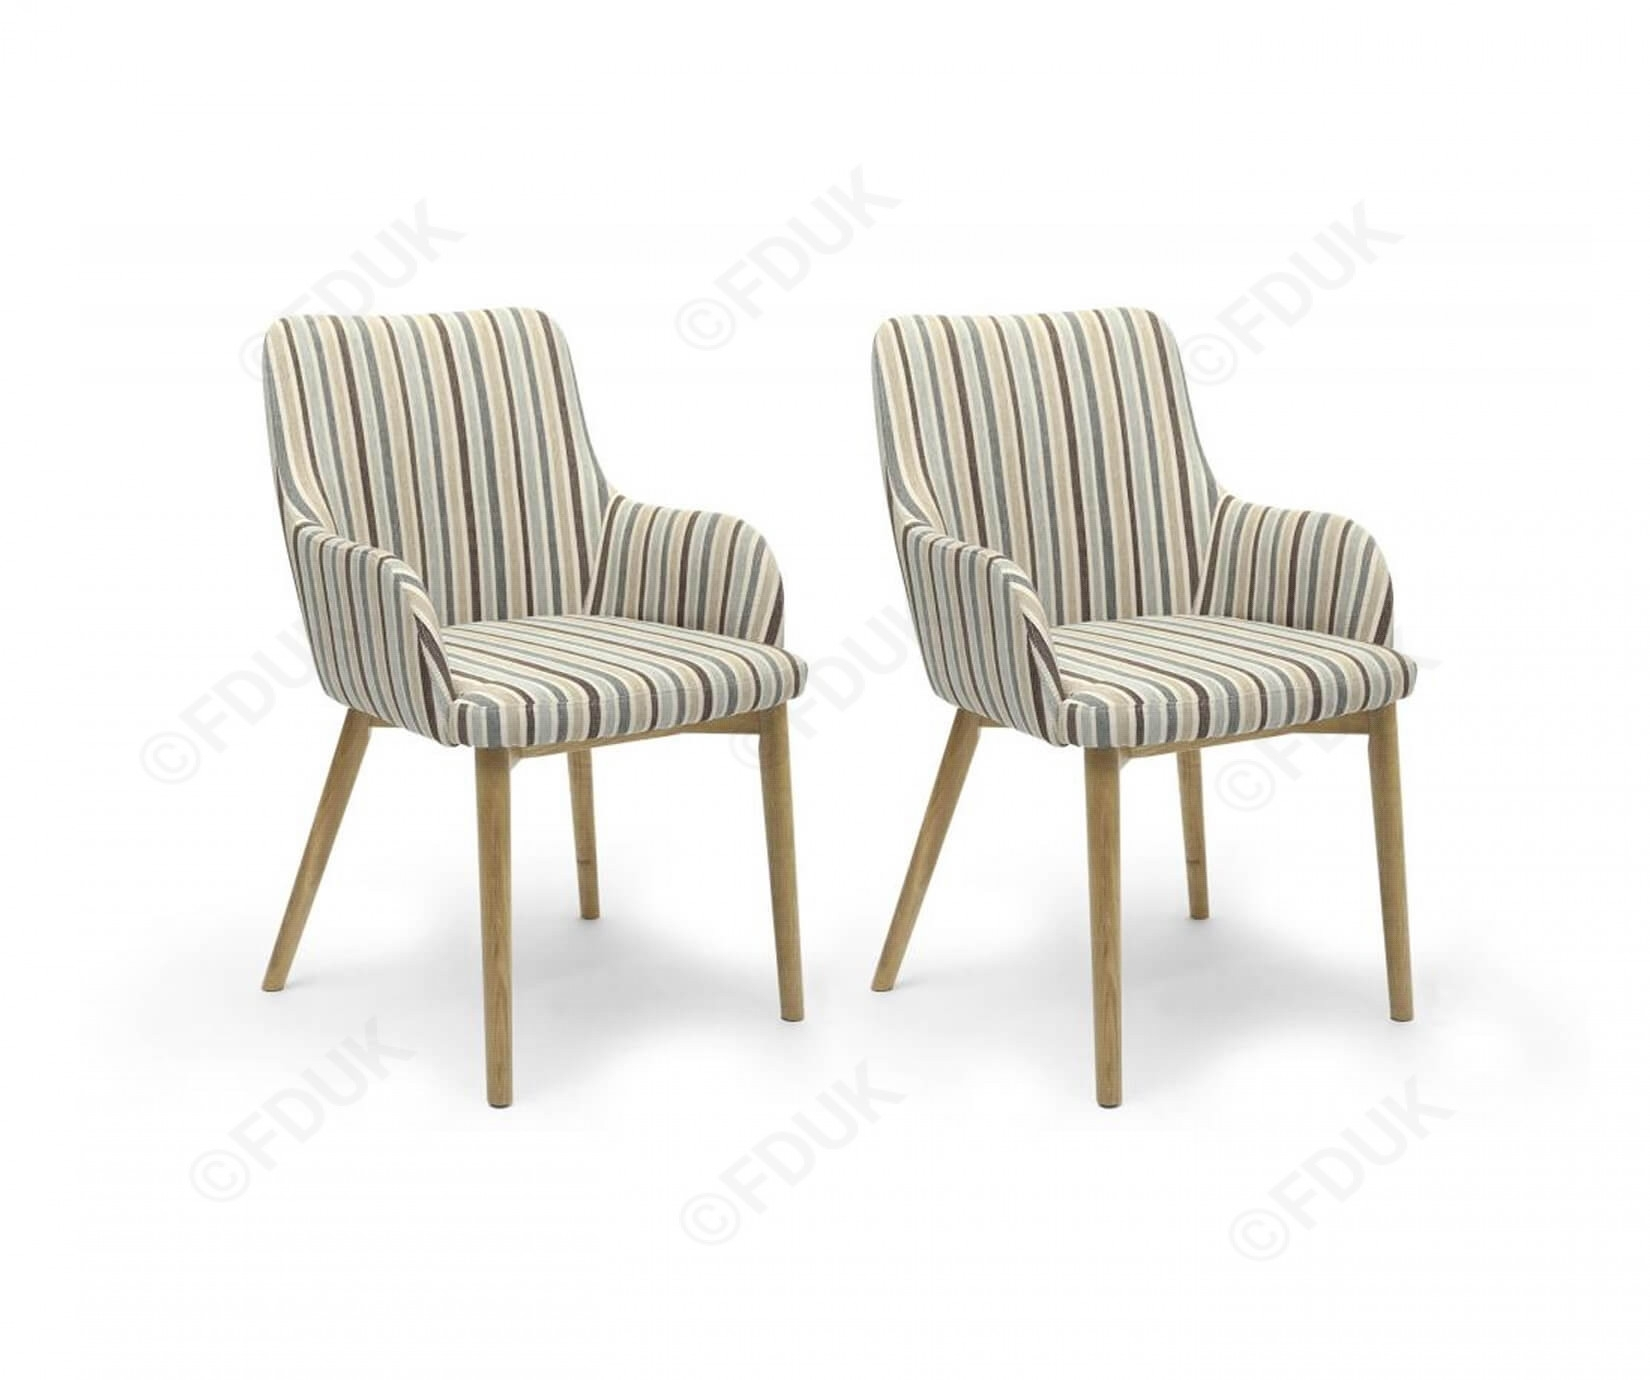 Blue Stripe Dining Chairs Intended For Trendy Shankar Sidcup (#5 of 20)